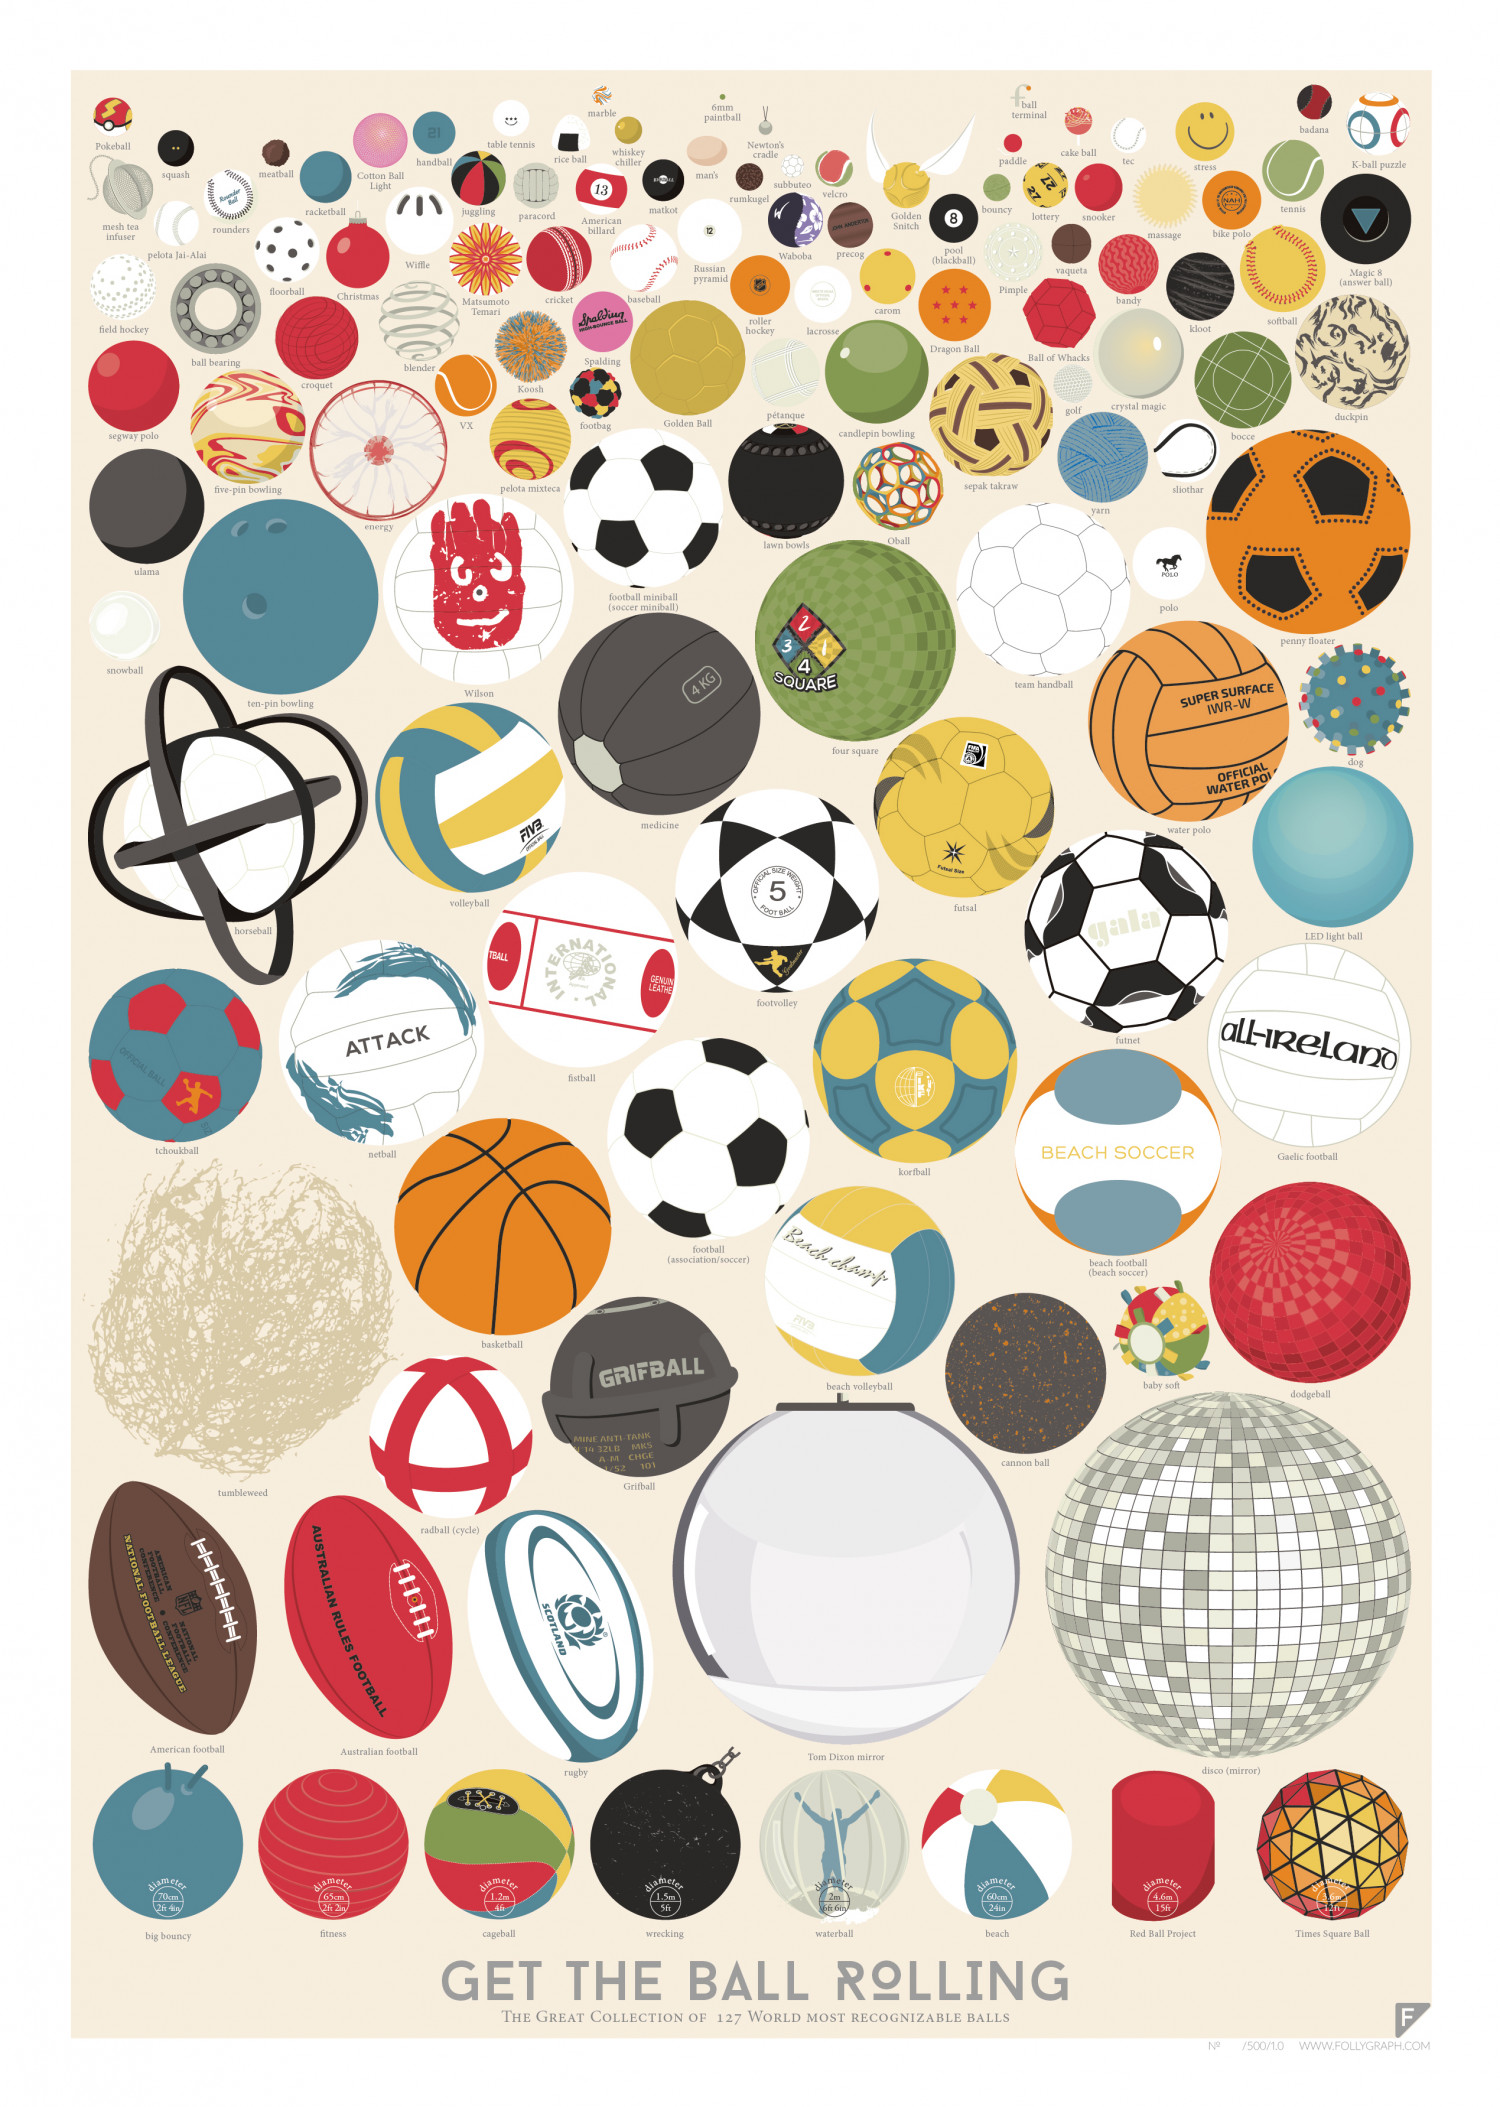 The Great Collection of 127 World's most recognizable balls Infographic